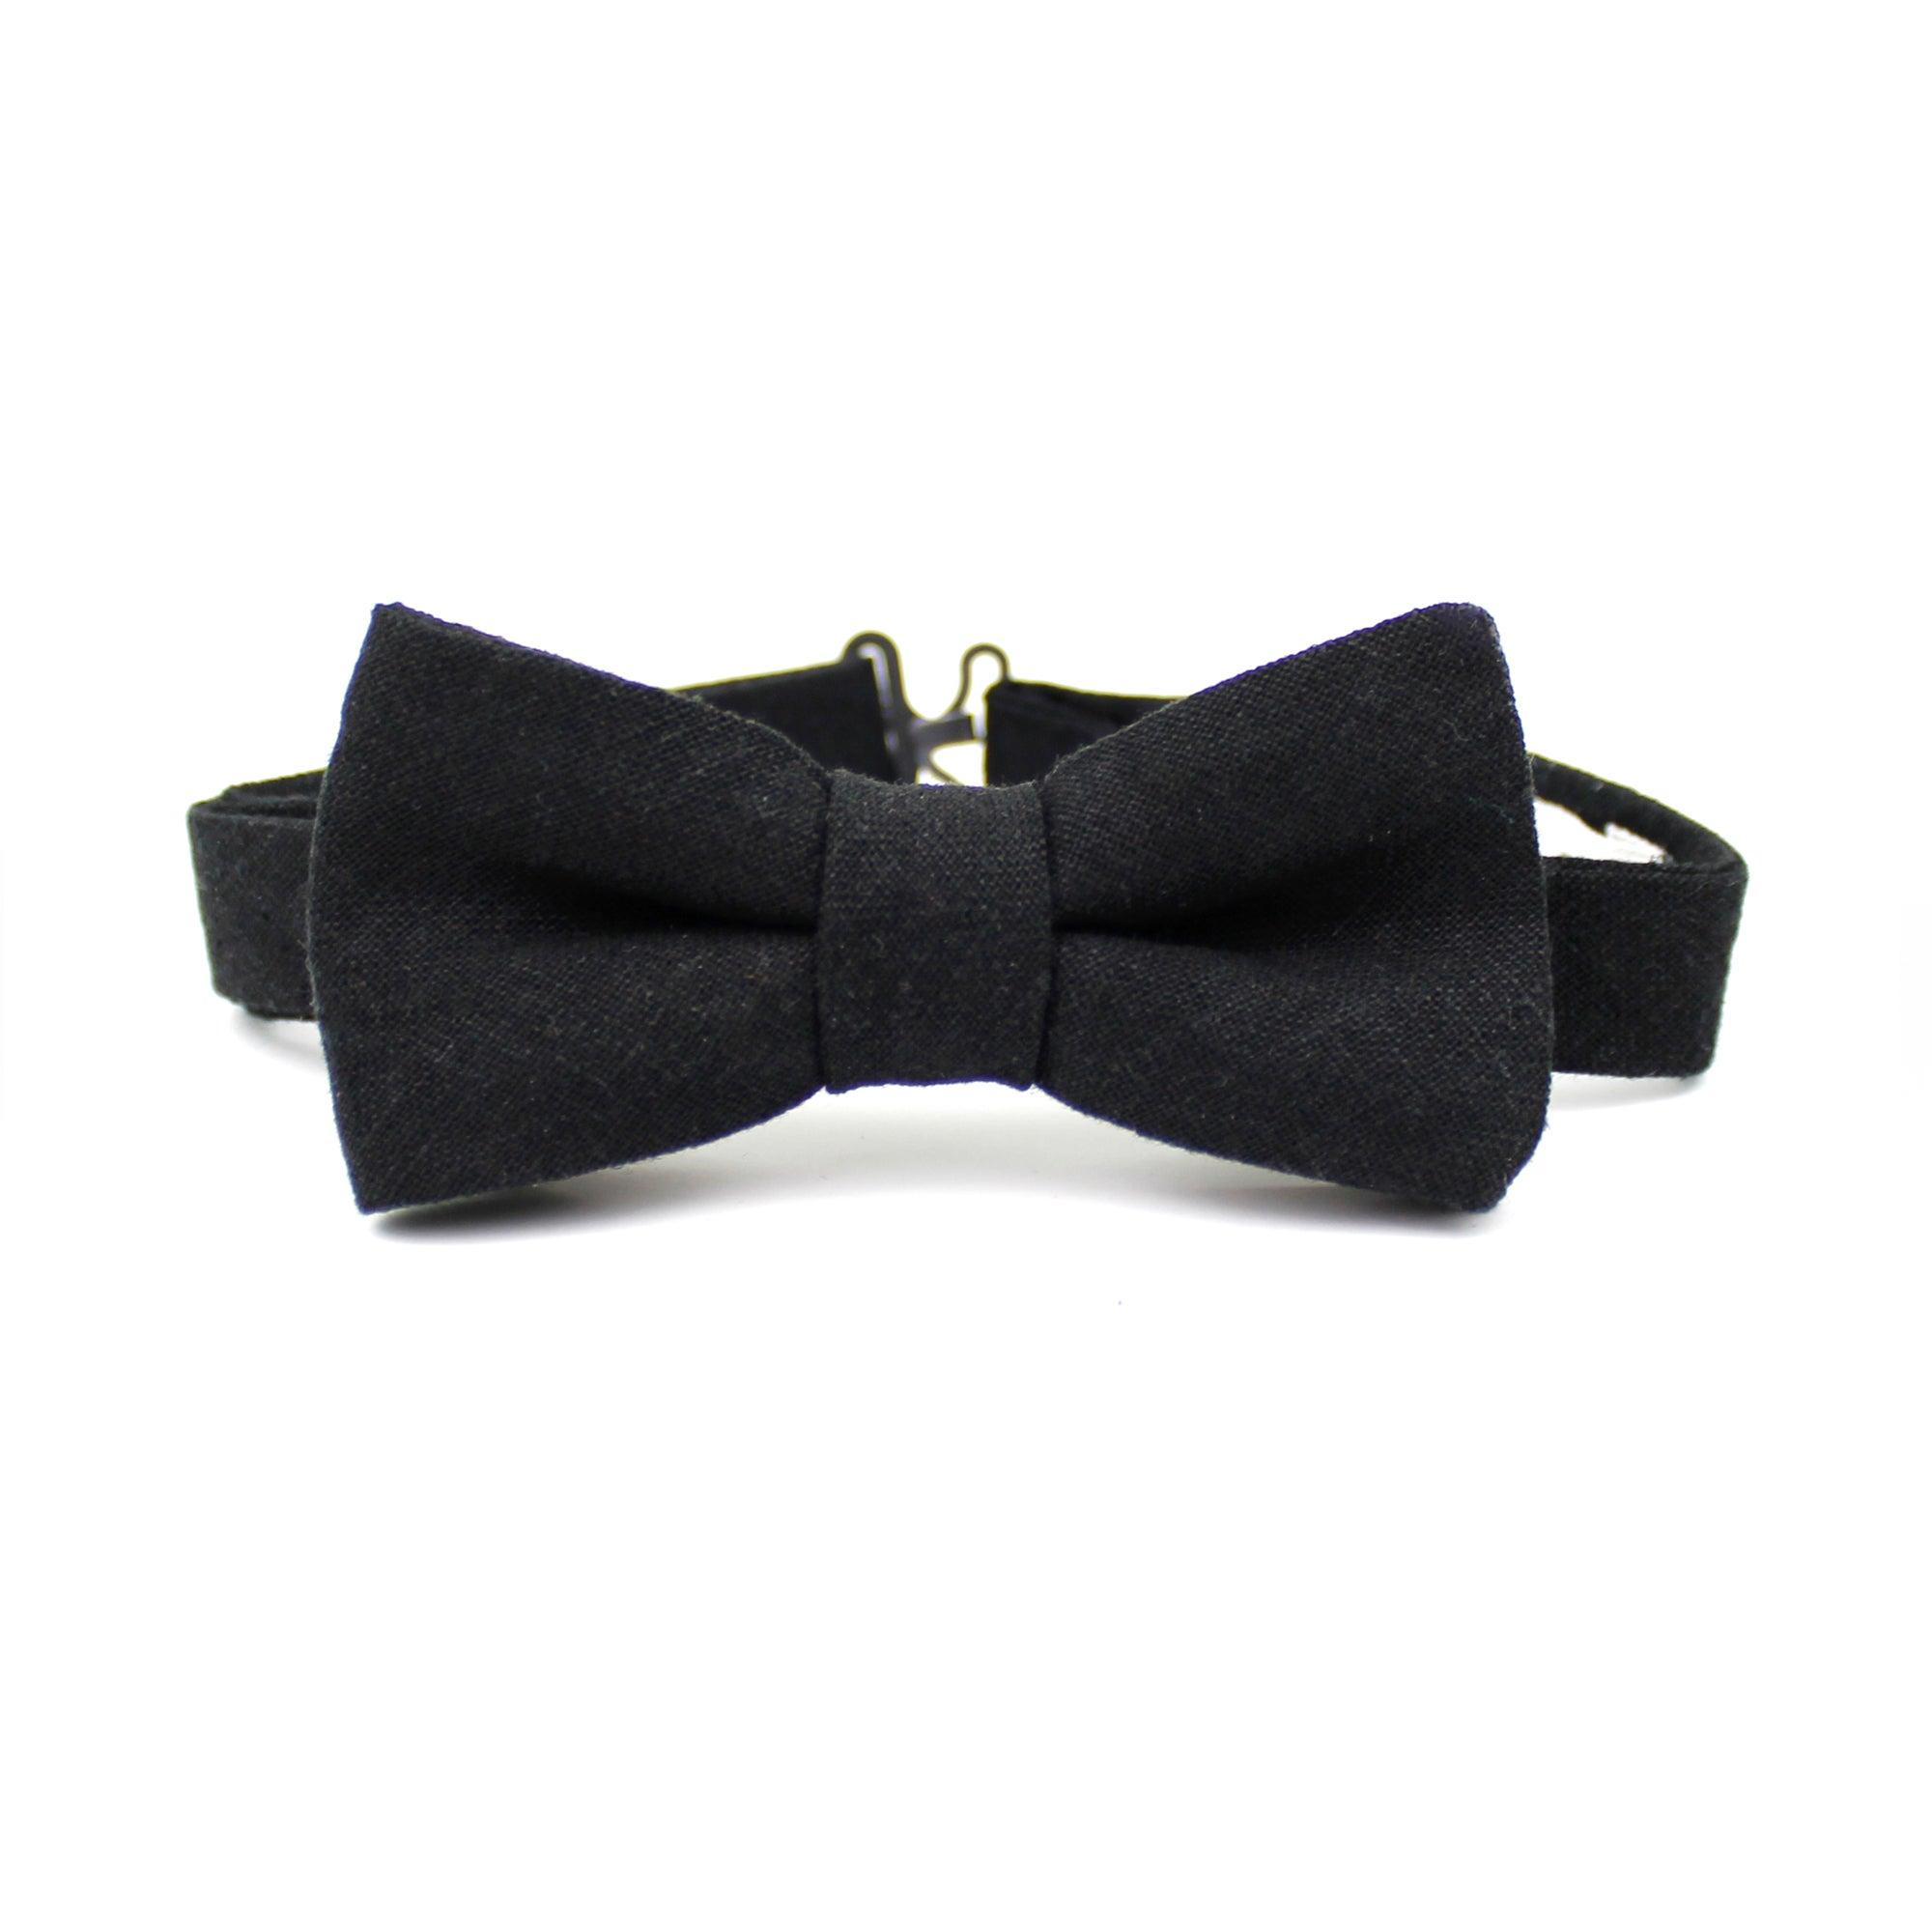 Black cotton bow tie printed with fox head